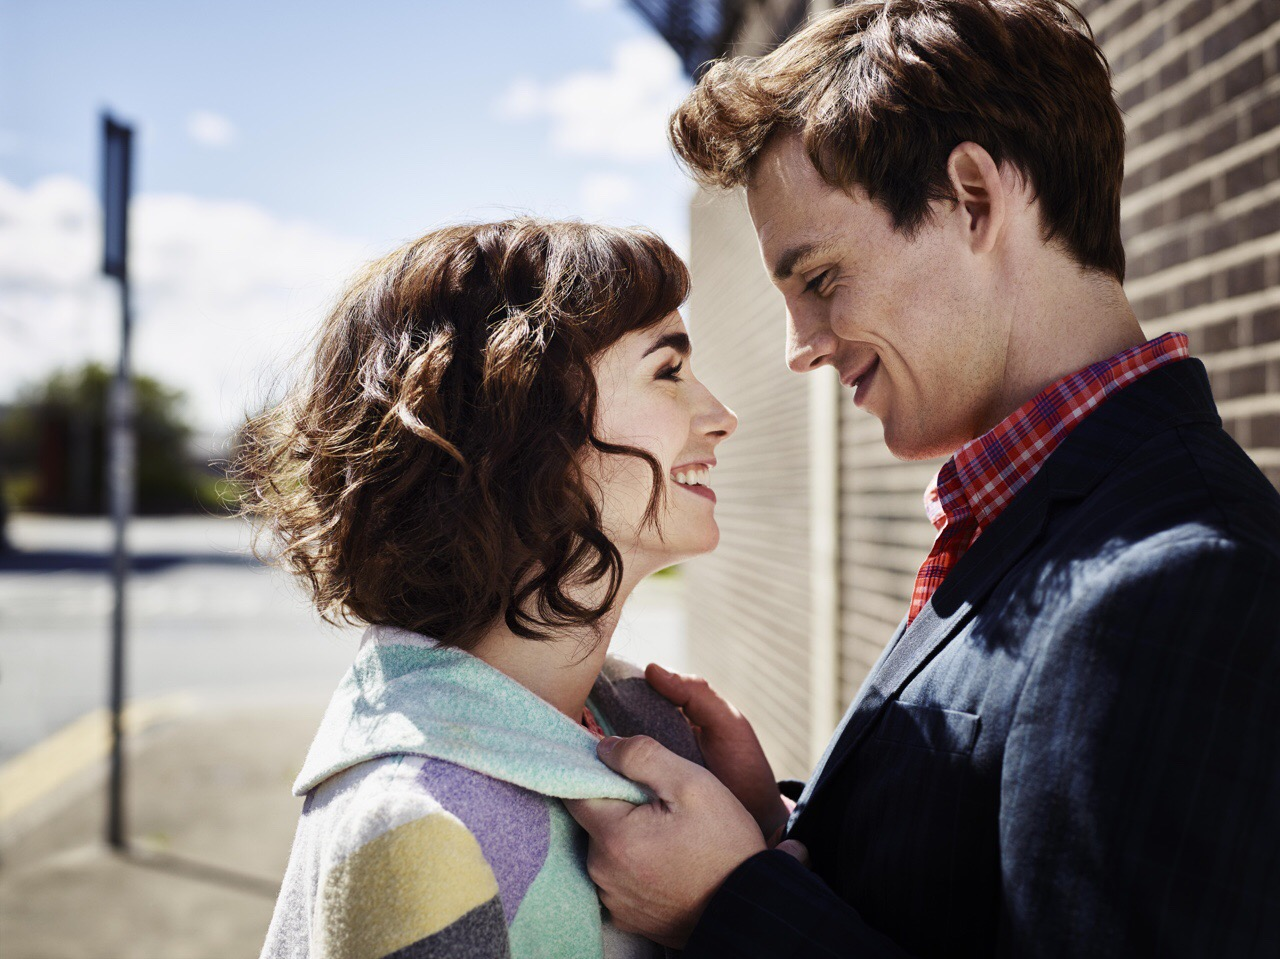 The film stars Lily Collins, Sam Claflin.